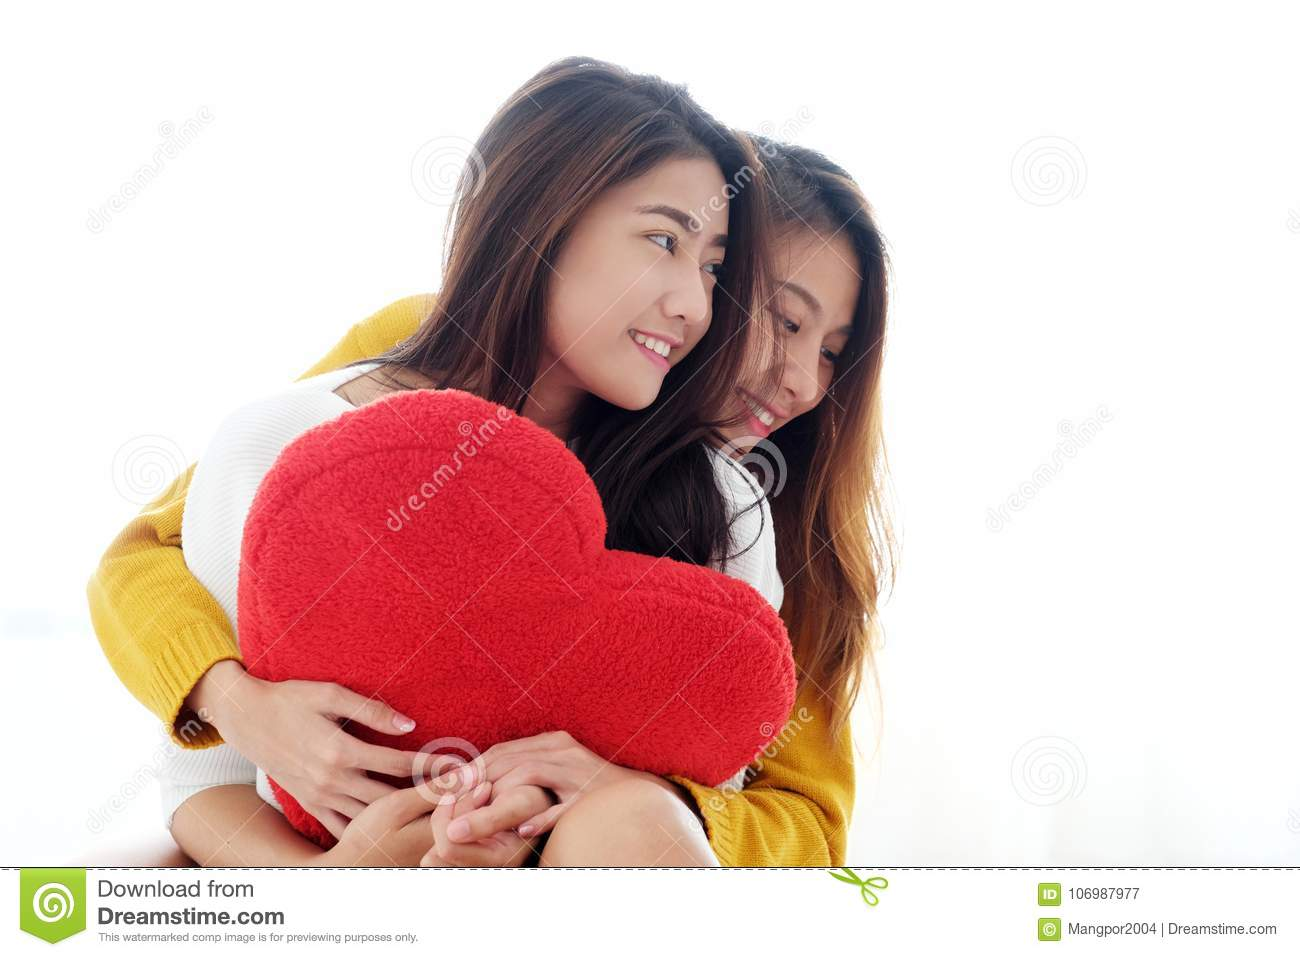 LGBT, Young cute asia lesbians huging and holding red heart shape willow together with happy smiling, couple